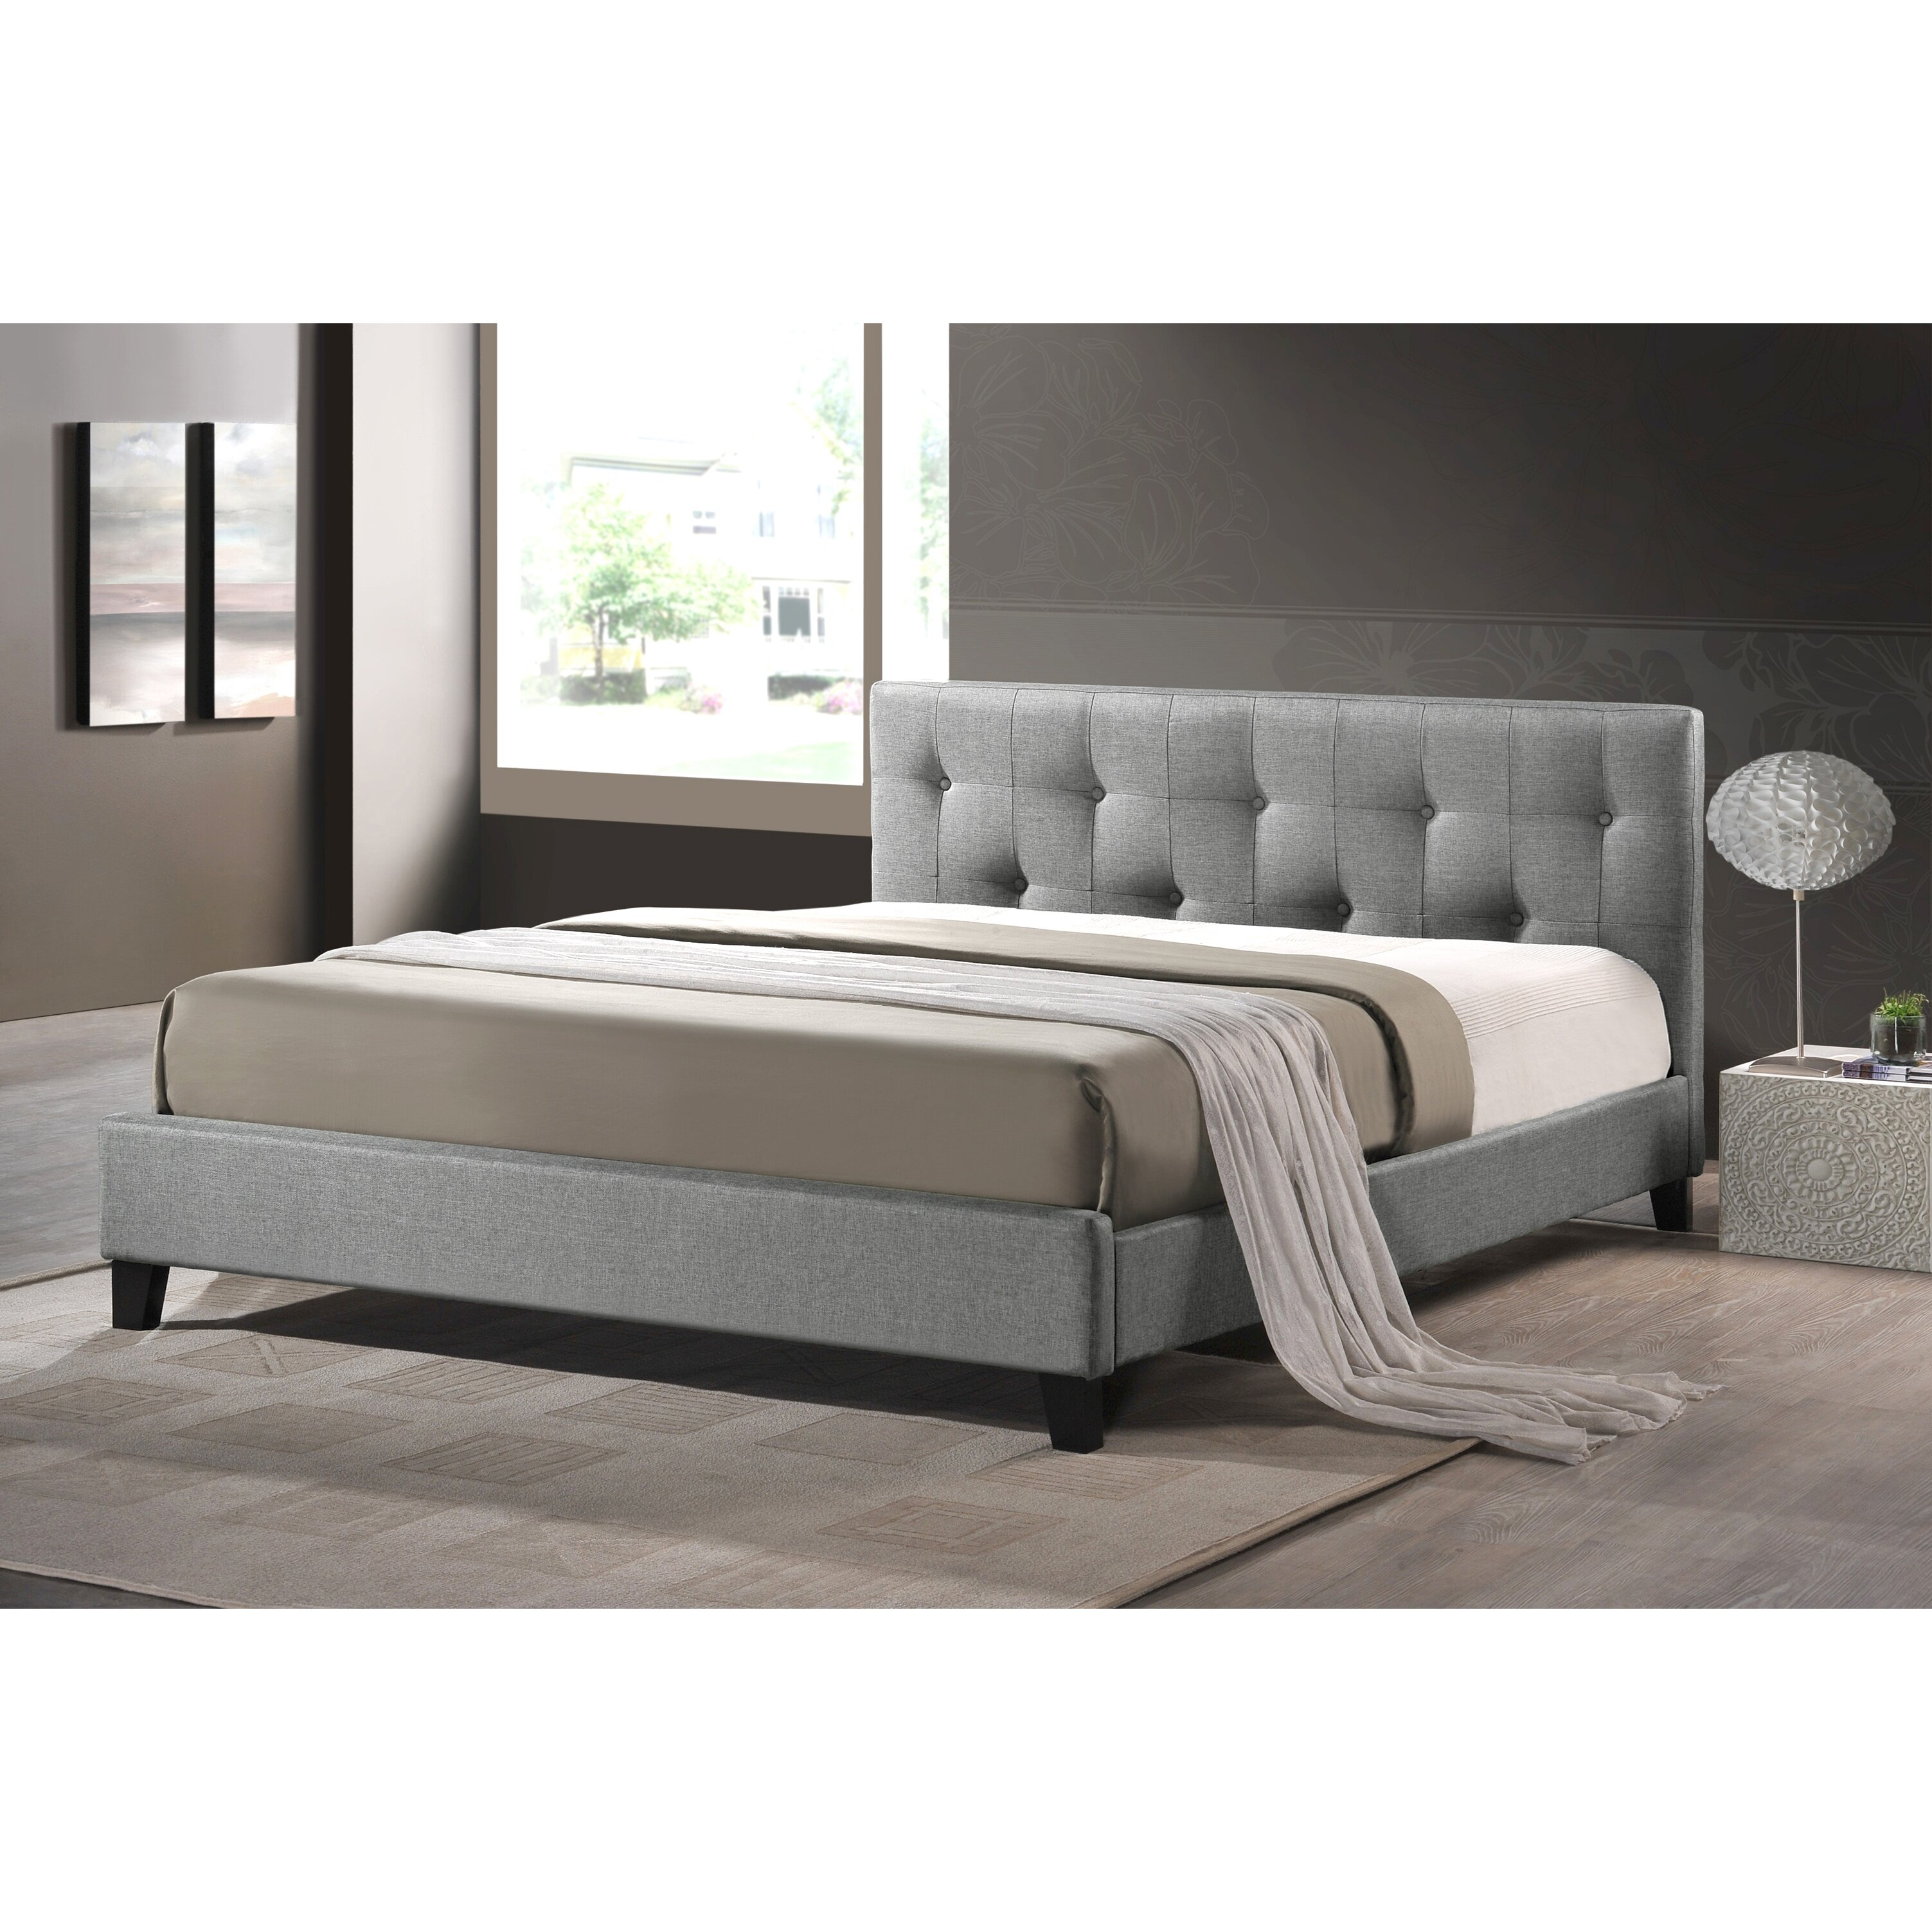 House of hampton blanchett upholstered platform bed for Upholstered beds